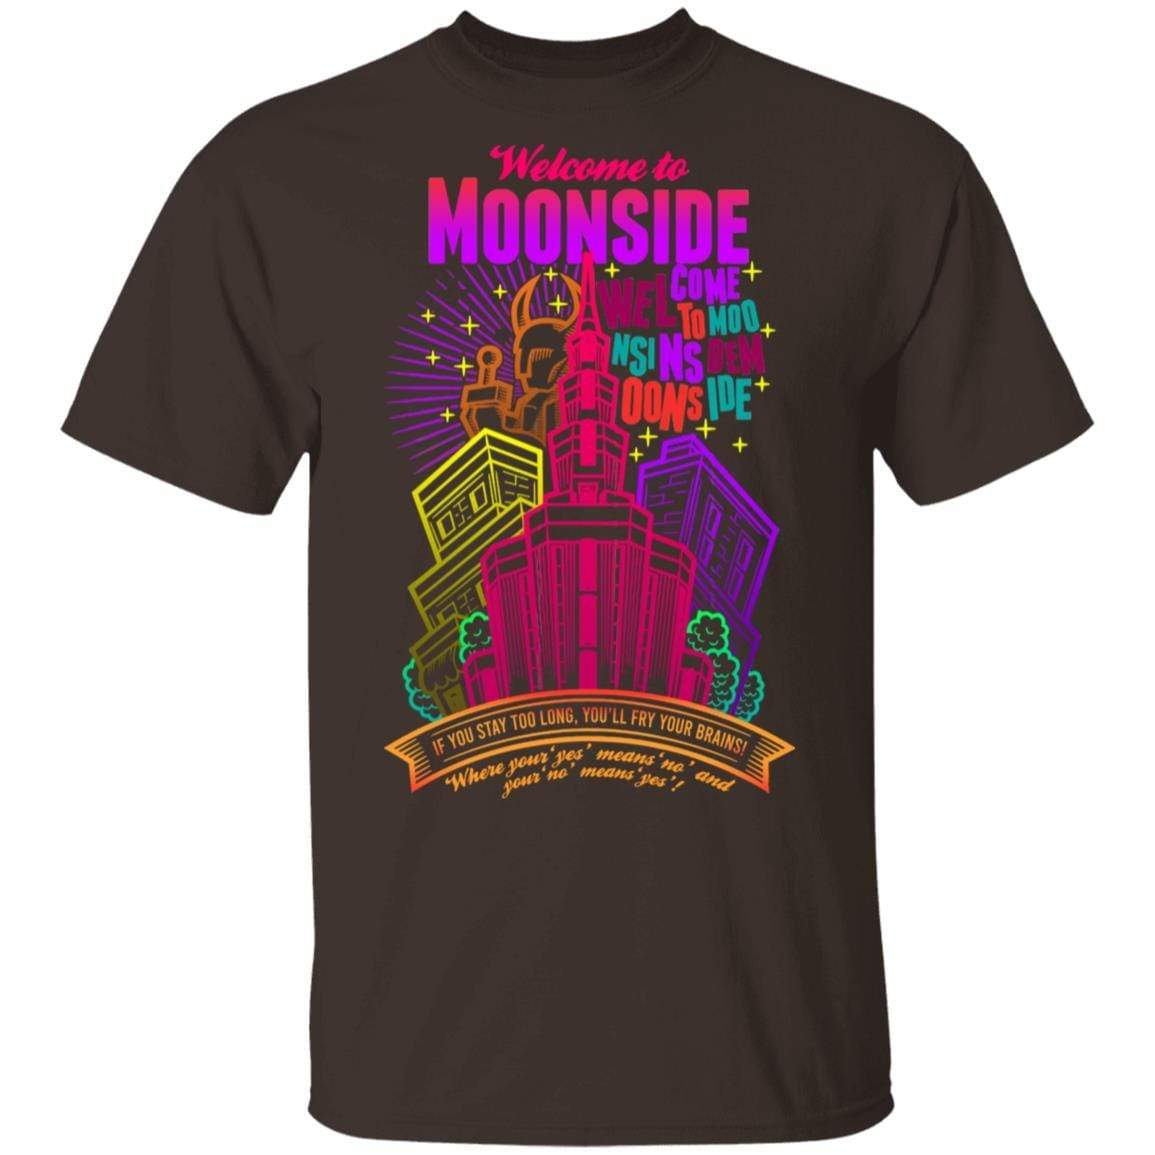 Welcome To Moonside If You Stay Too Long You'll Fry Your Brains T-Shirts, Hoodies 1049-9956-88445012-48152 - Tee Ript